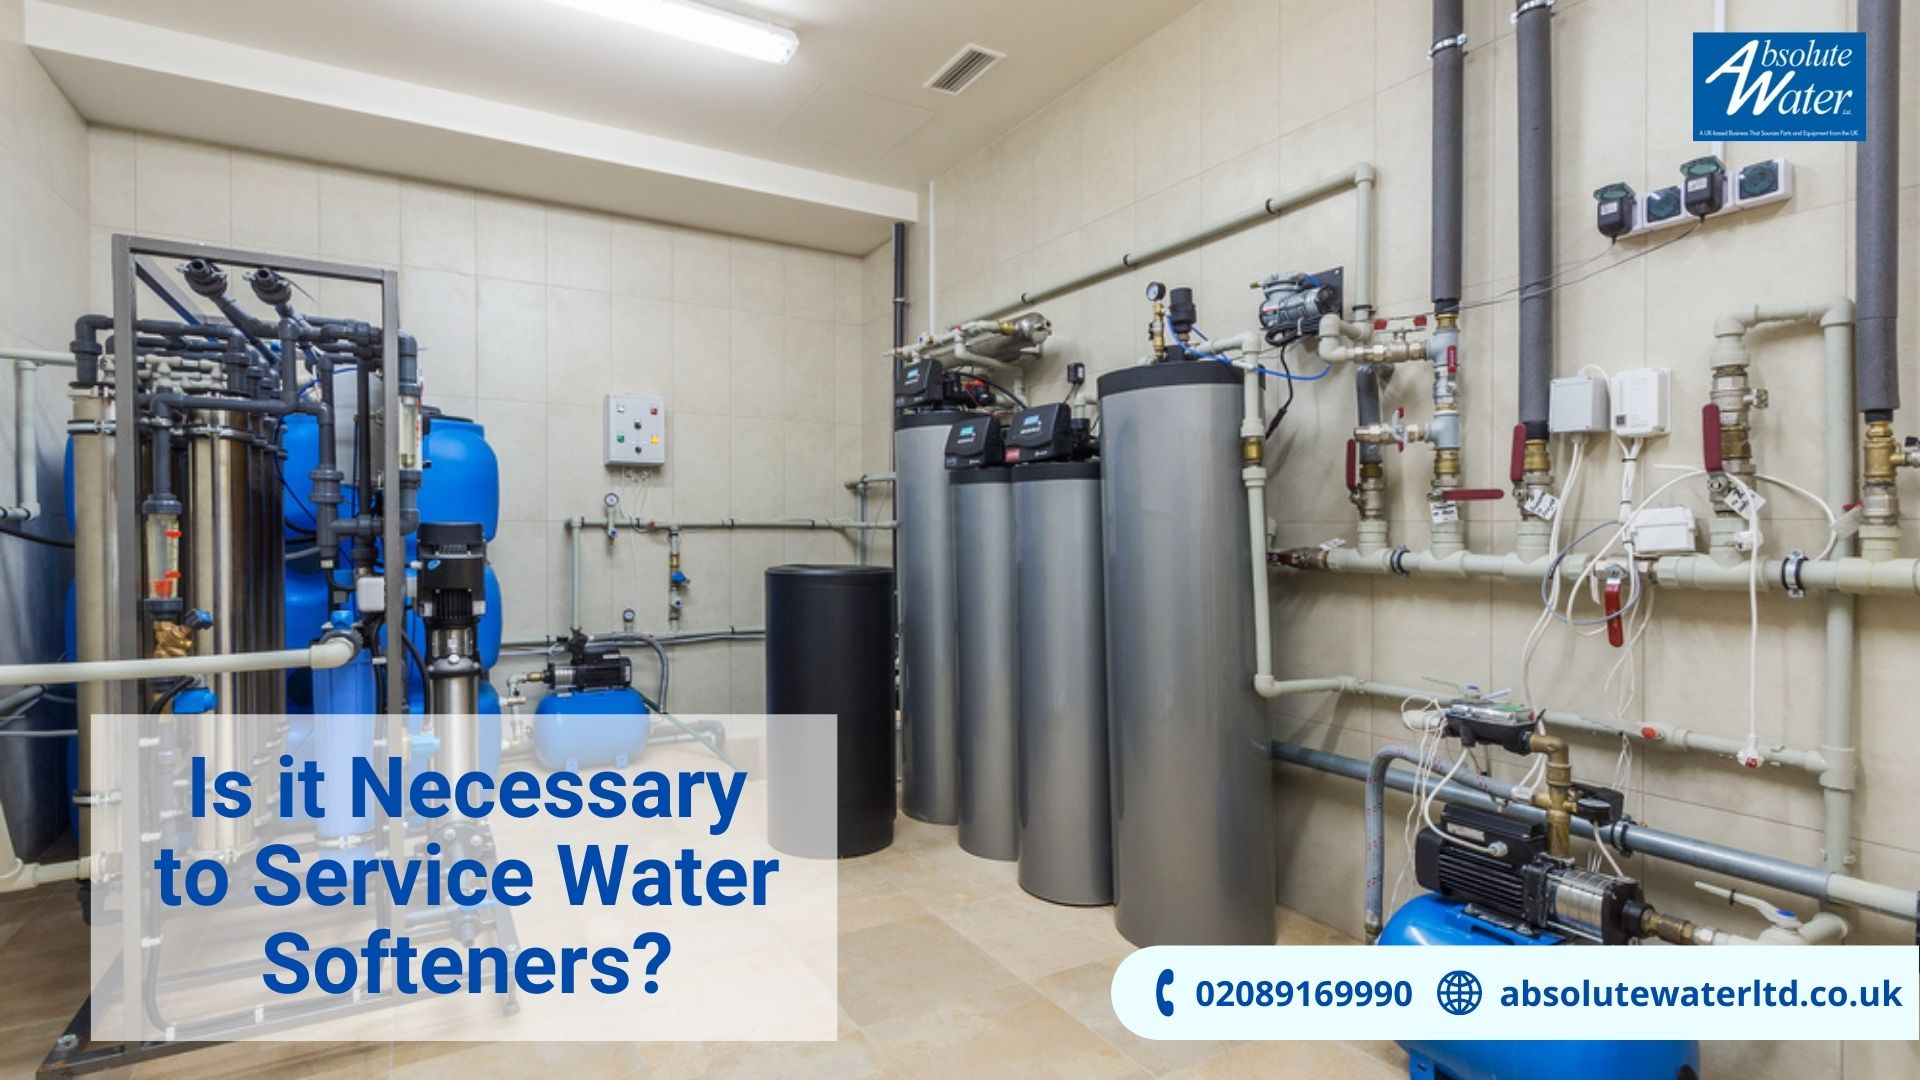 Absolute Water Ltd Servicing Water Softeners